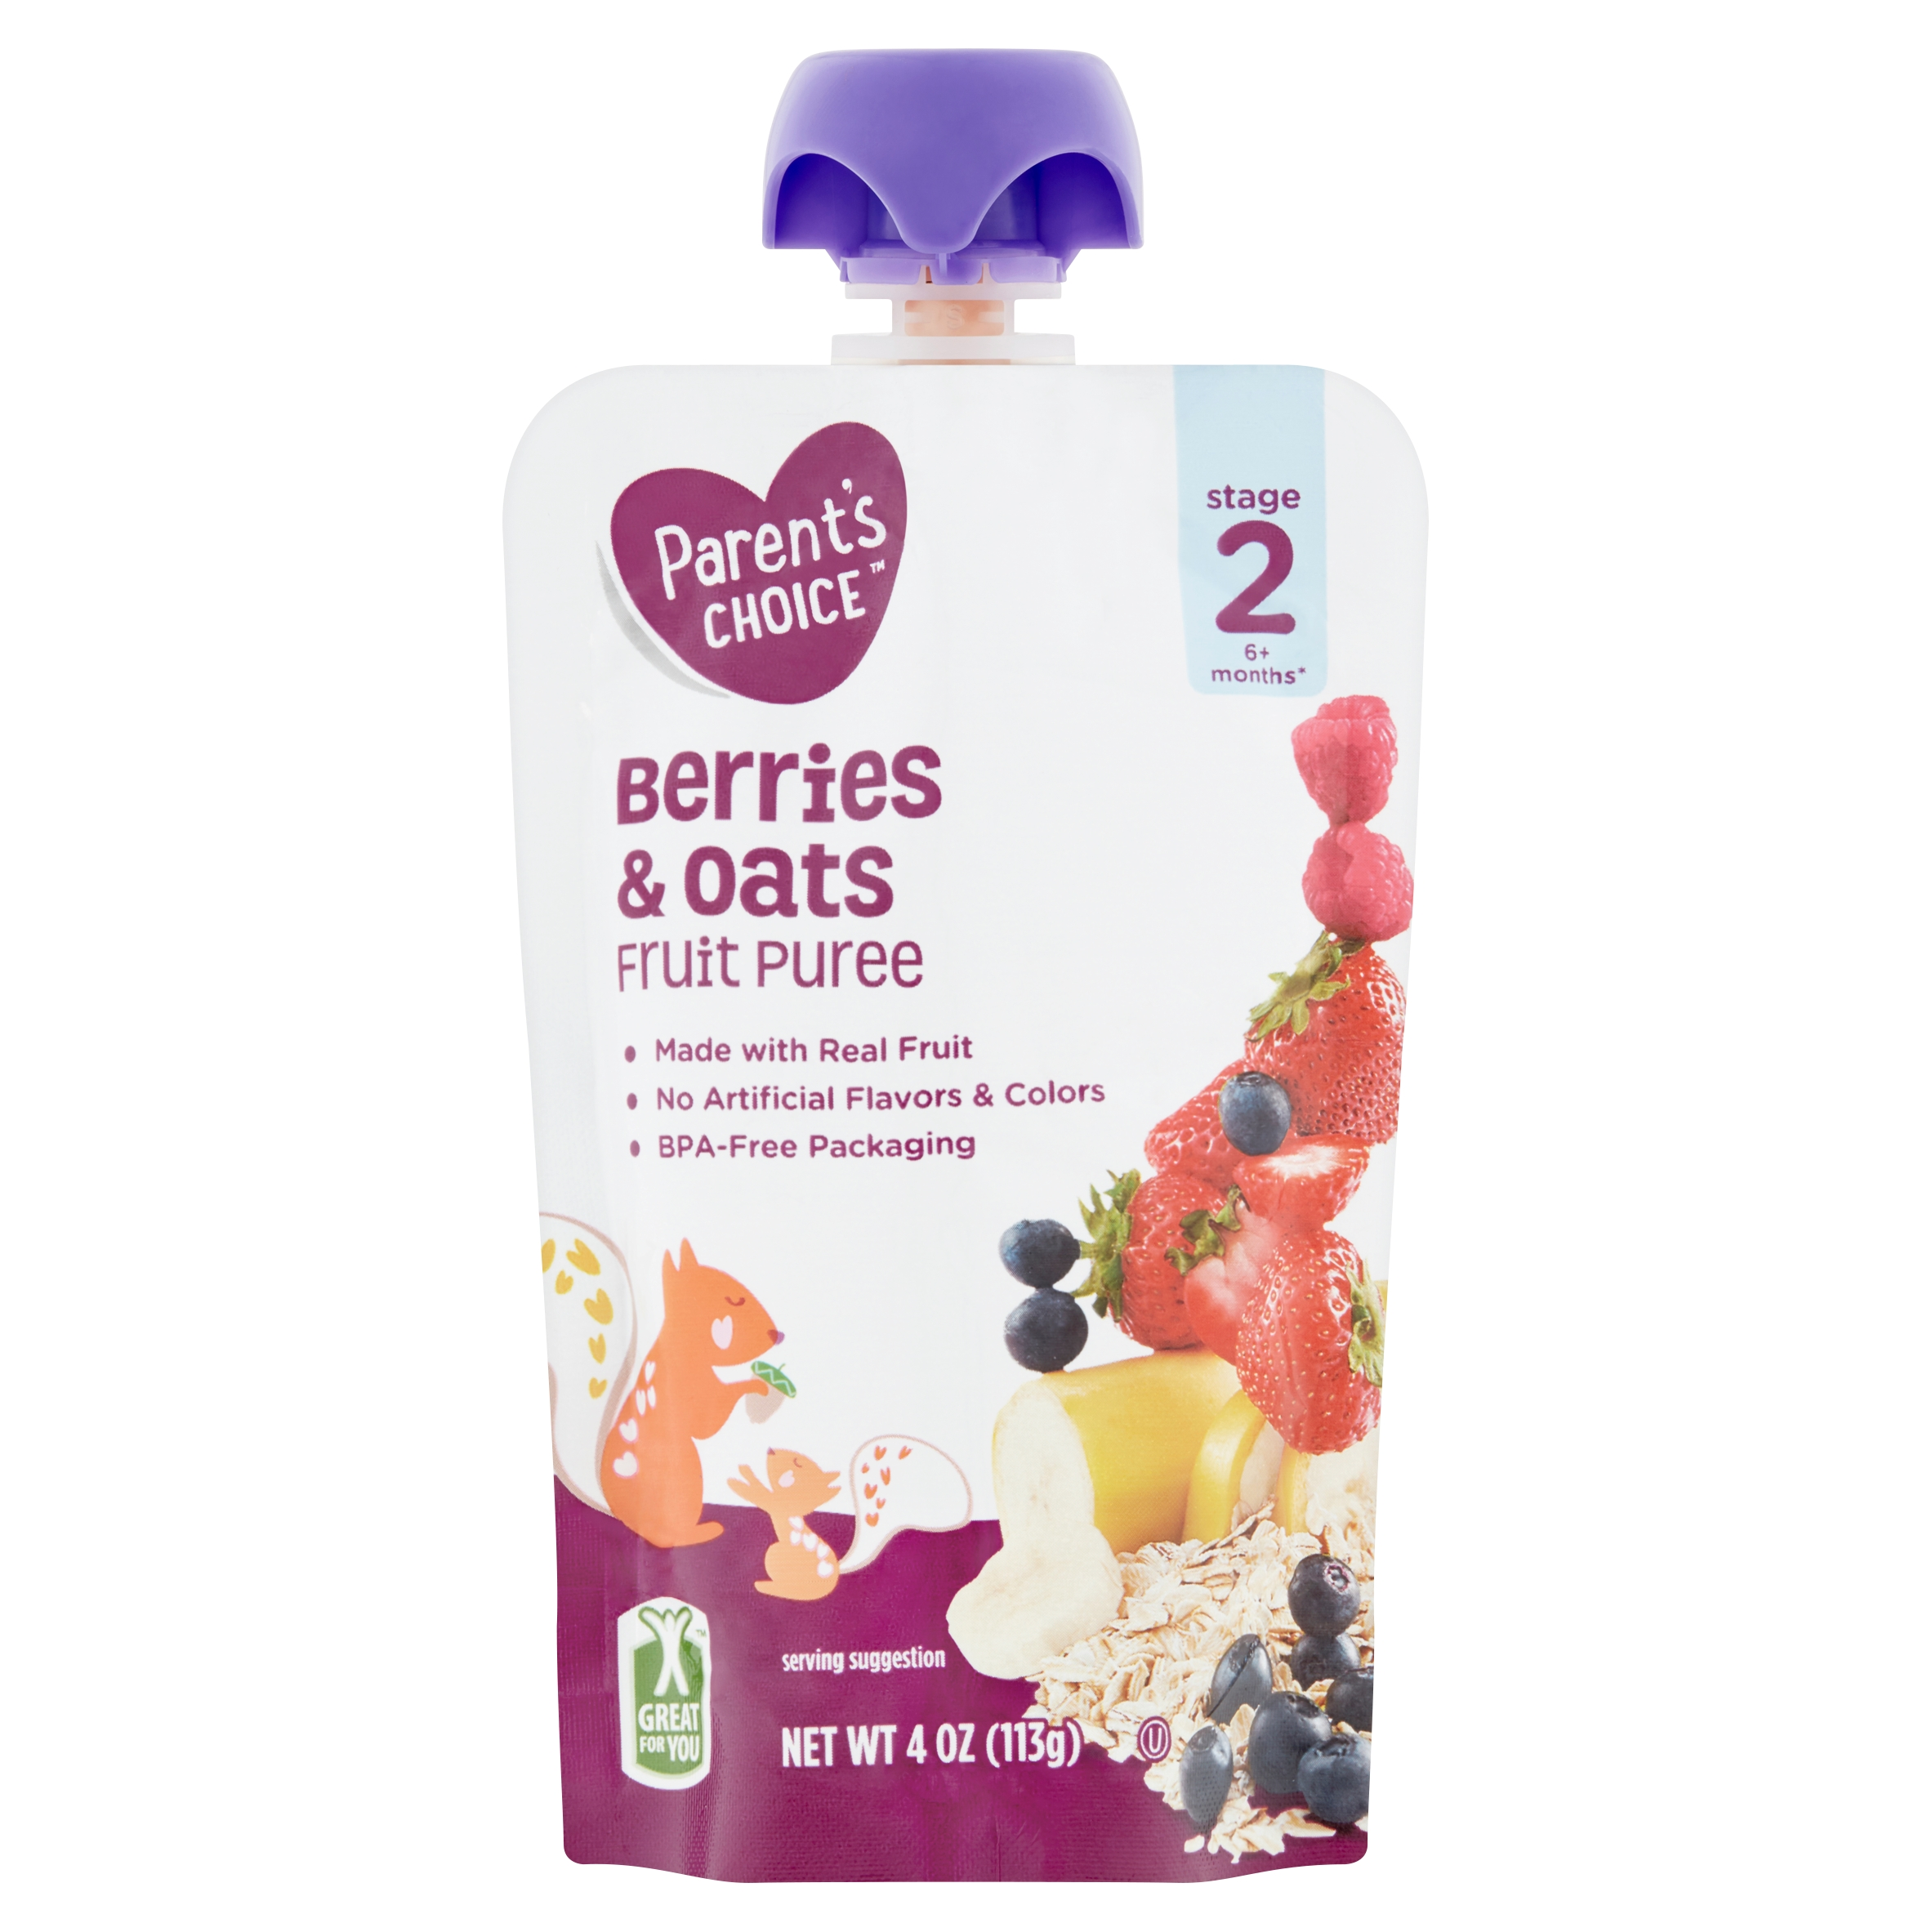 Parent's Choice Berries & Oats, Stage 2, 4 oz Pouch